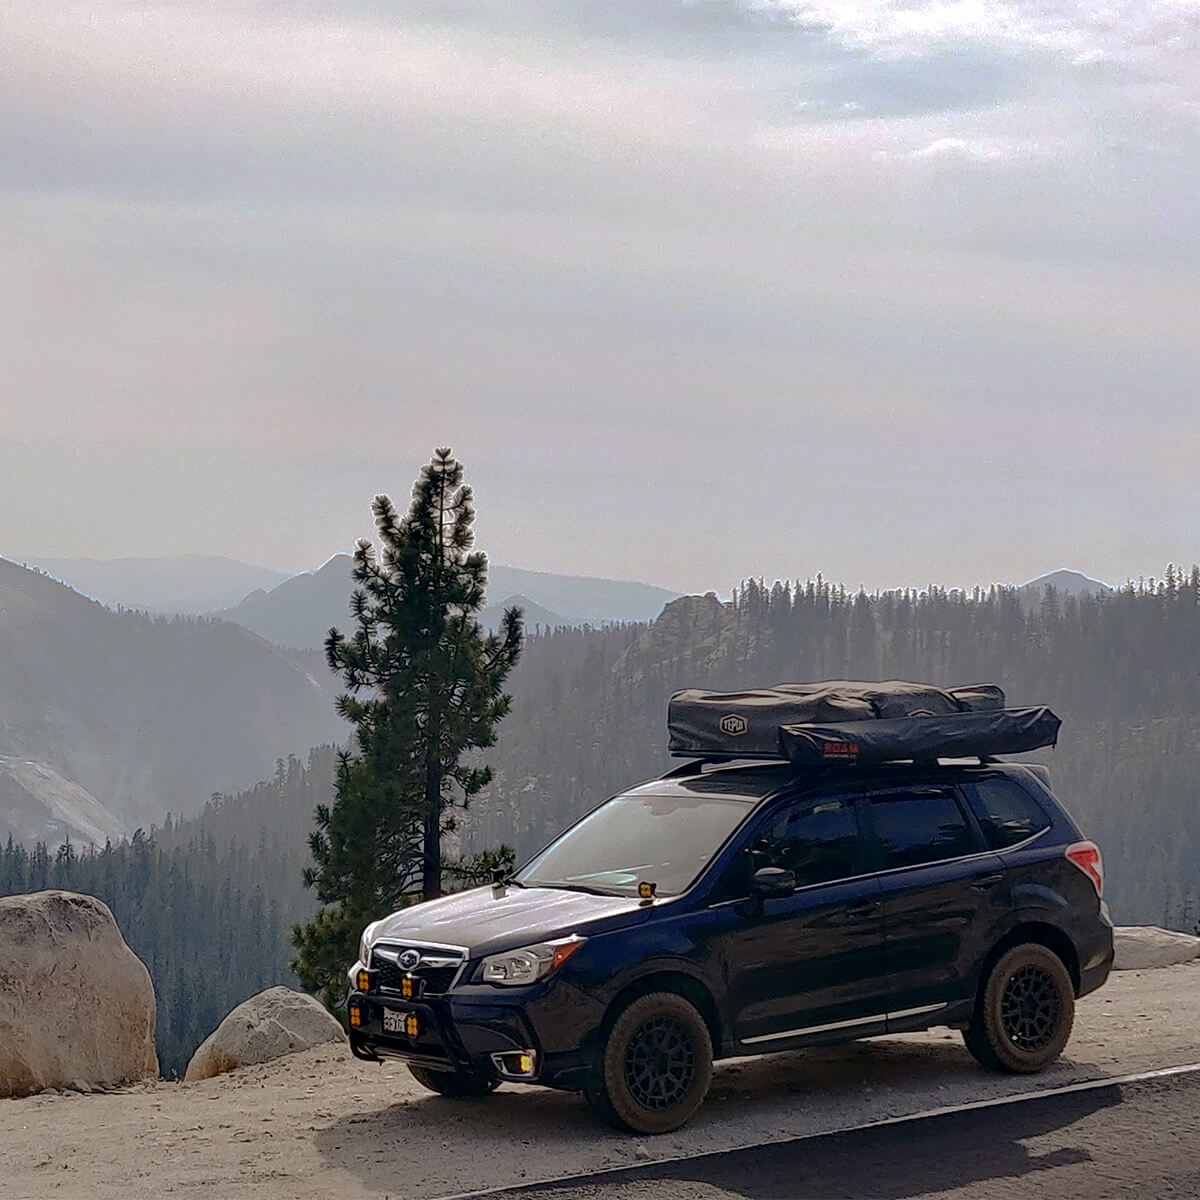 Subaru forester SJ off road mods and a roof rack